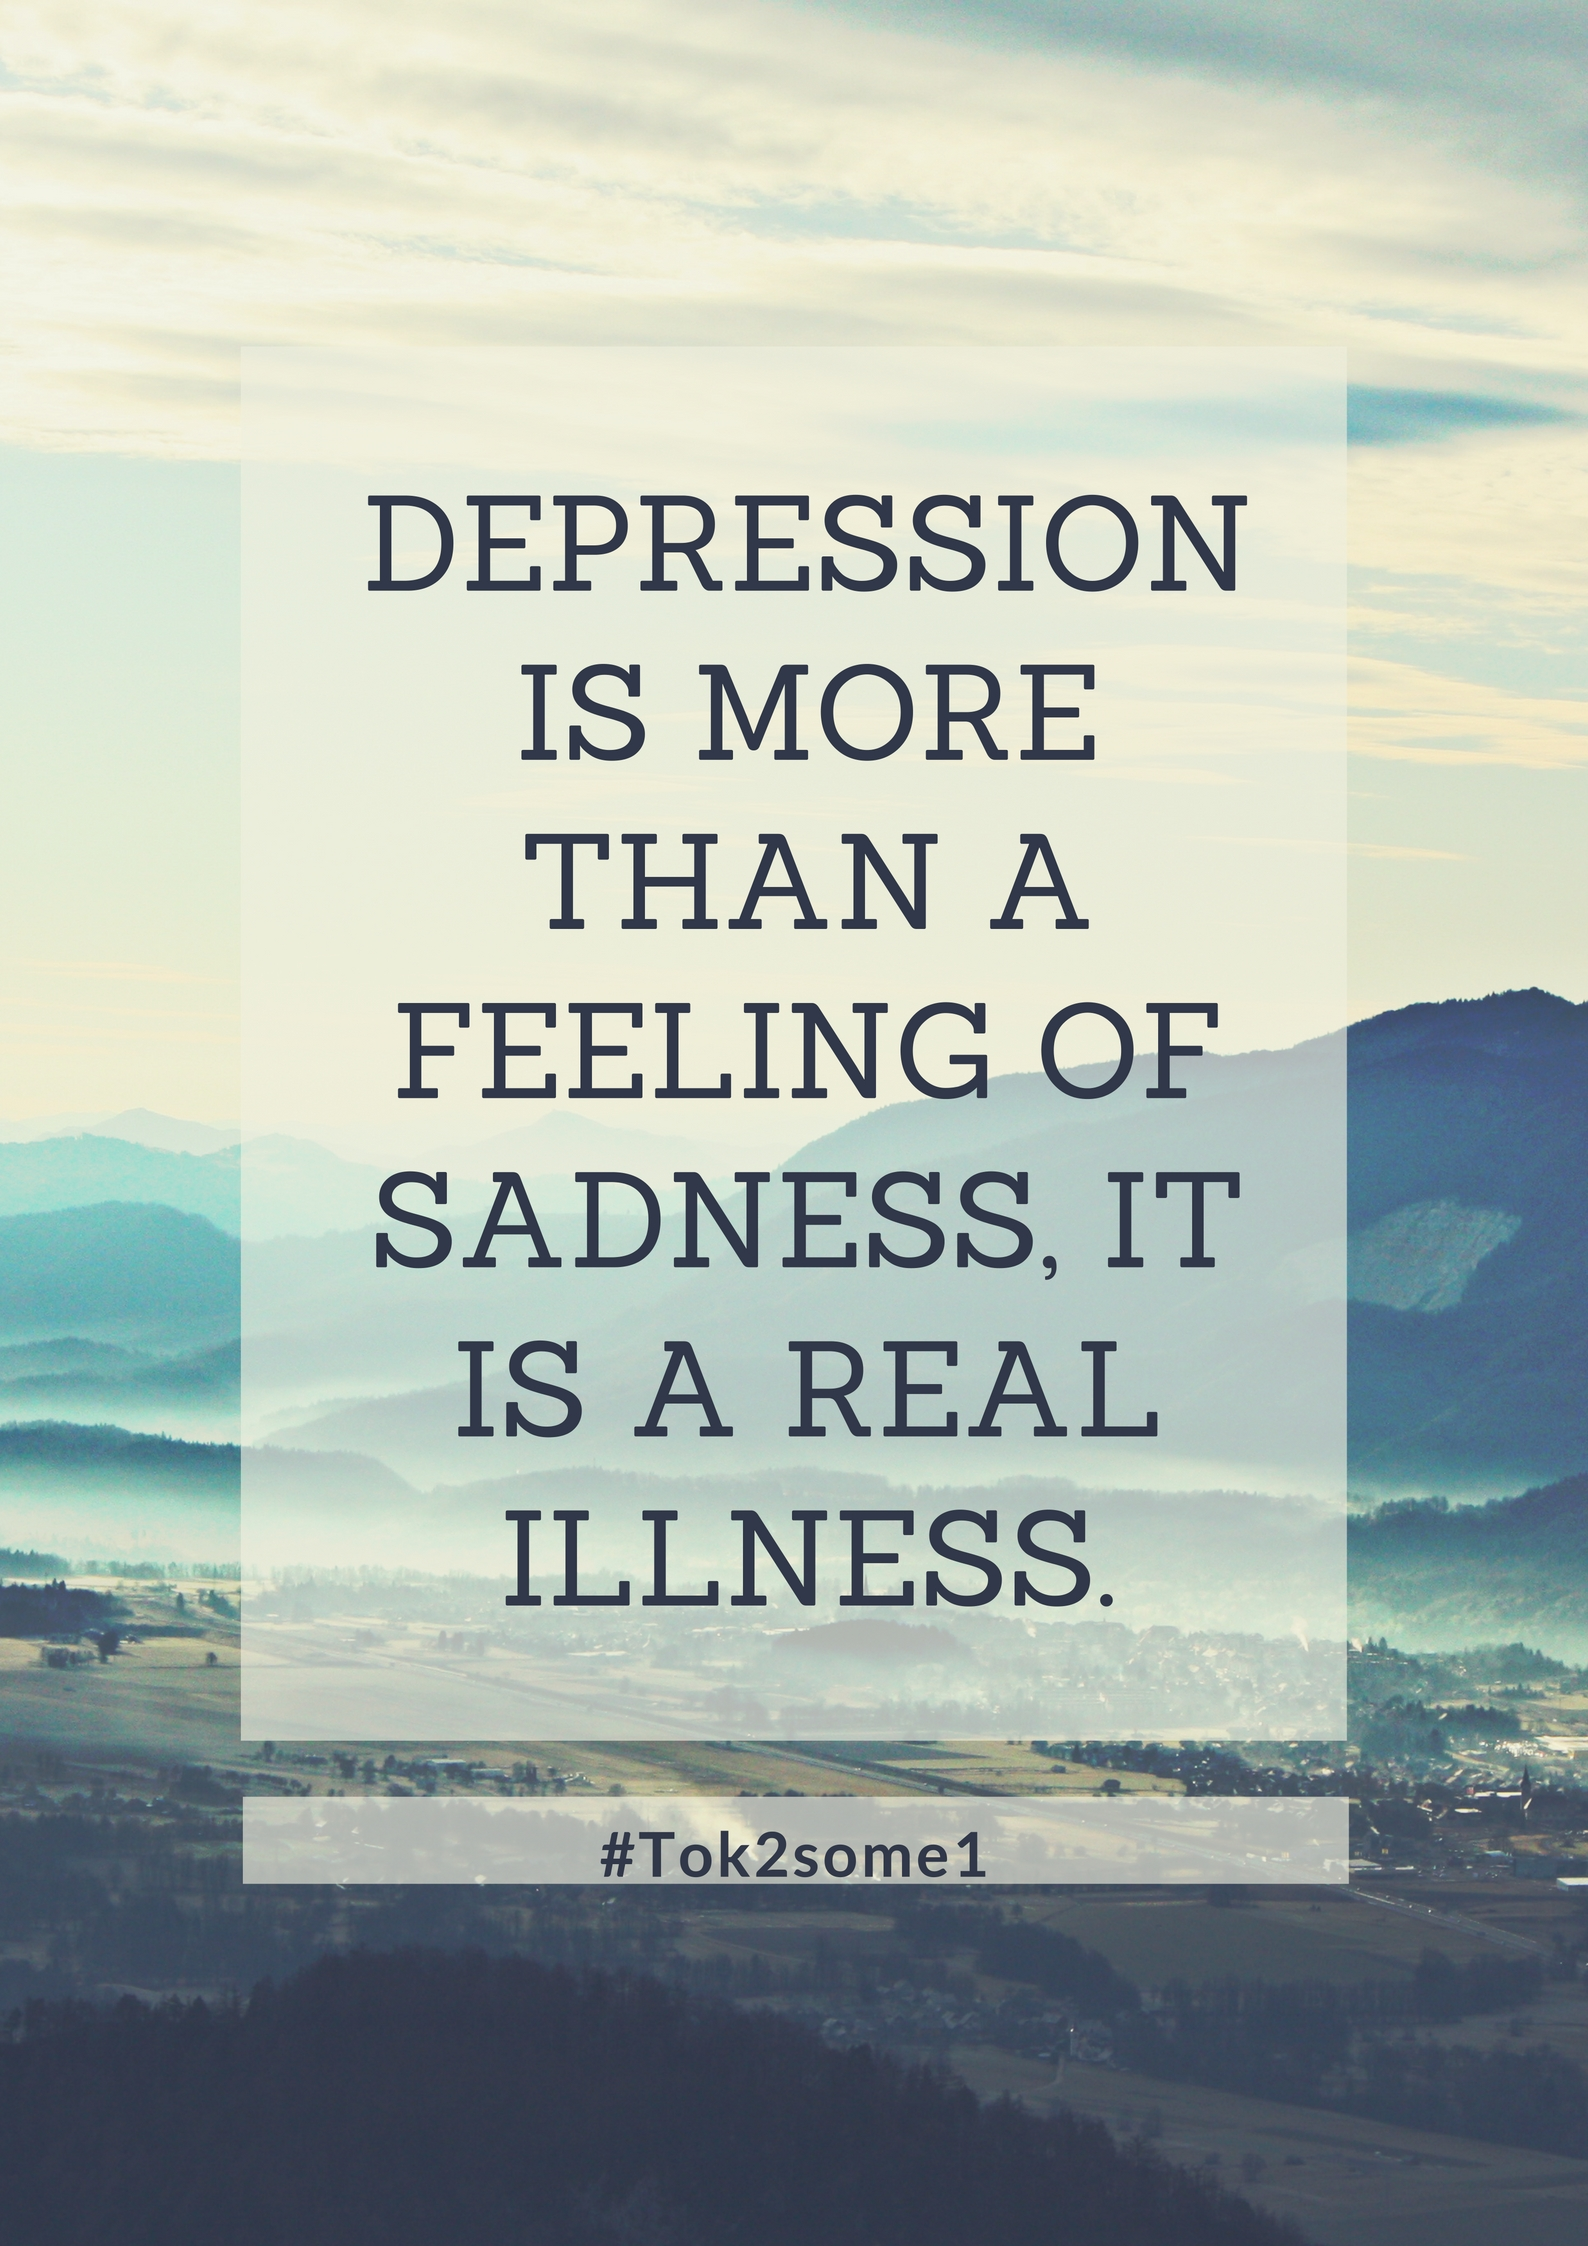 Depression is a real illness